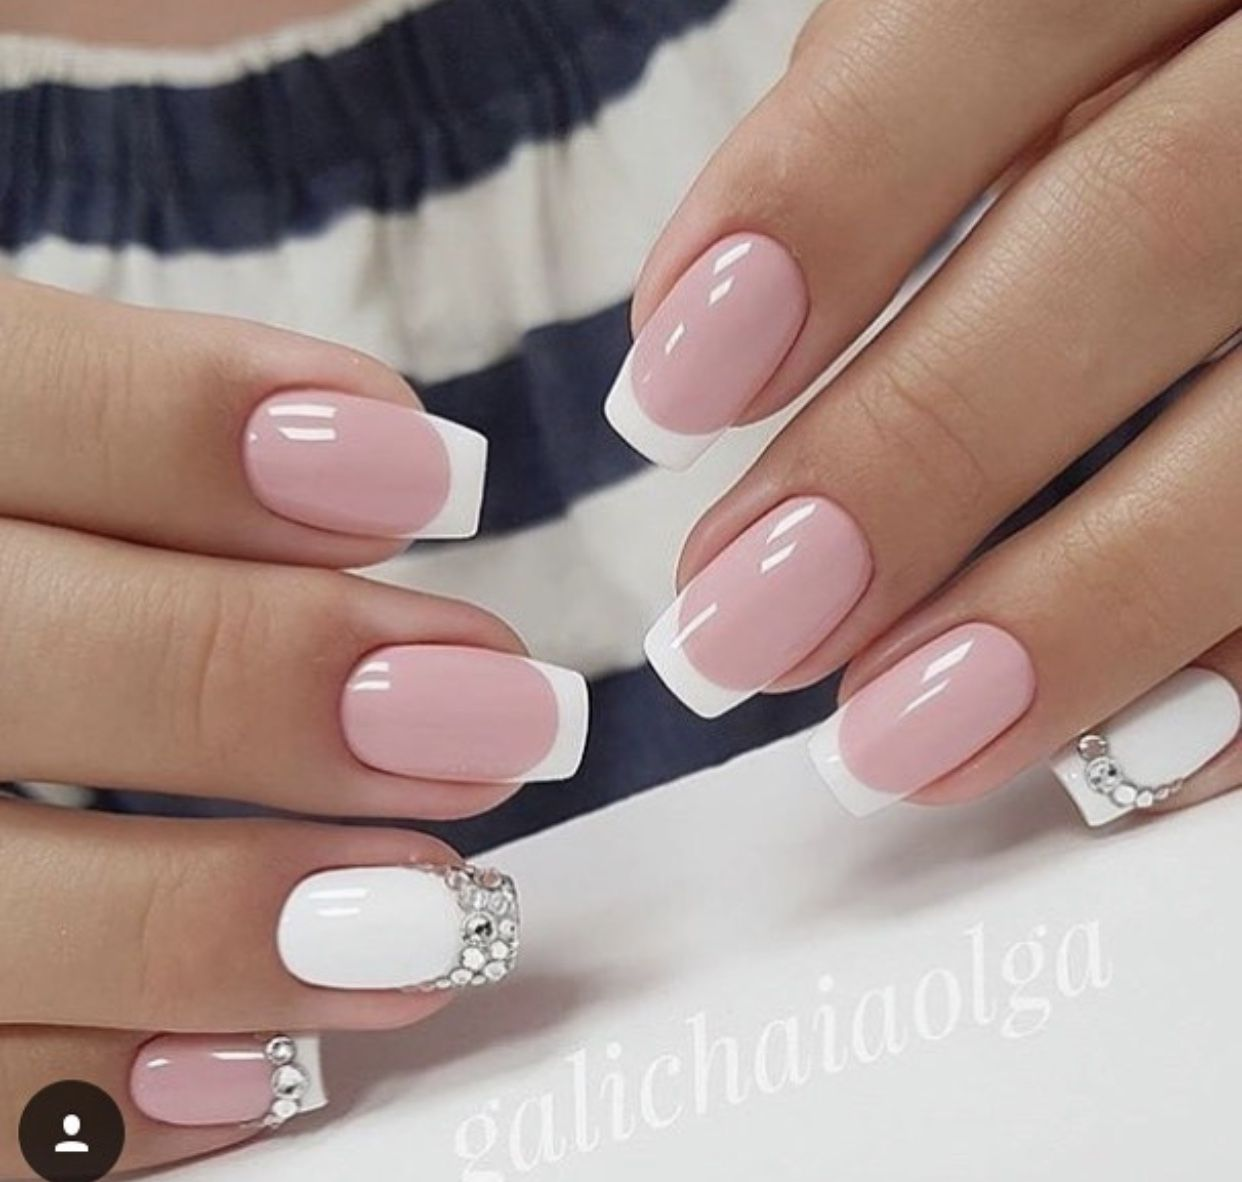 Pin by kesia suarez on uñas | Pinterest | Manicure, Toe nail art and ...